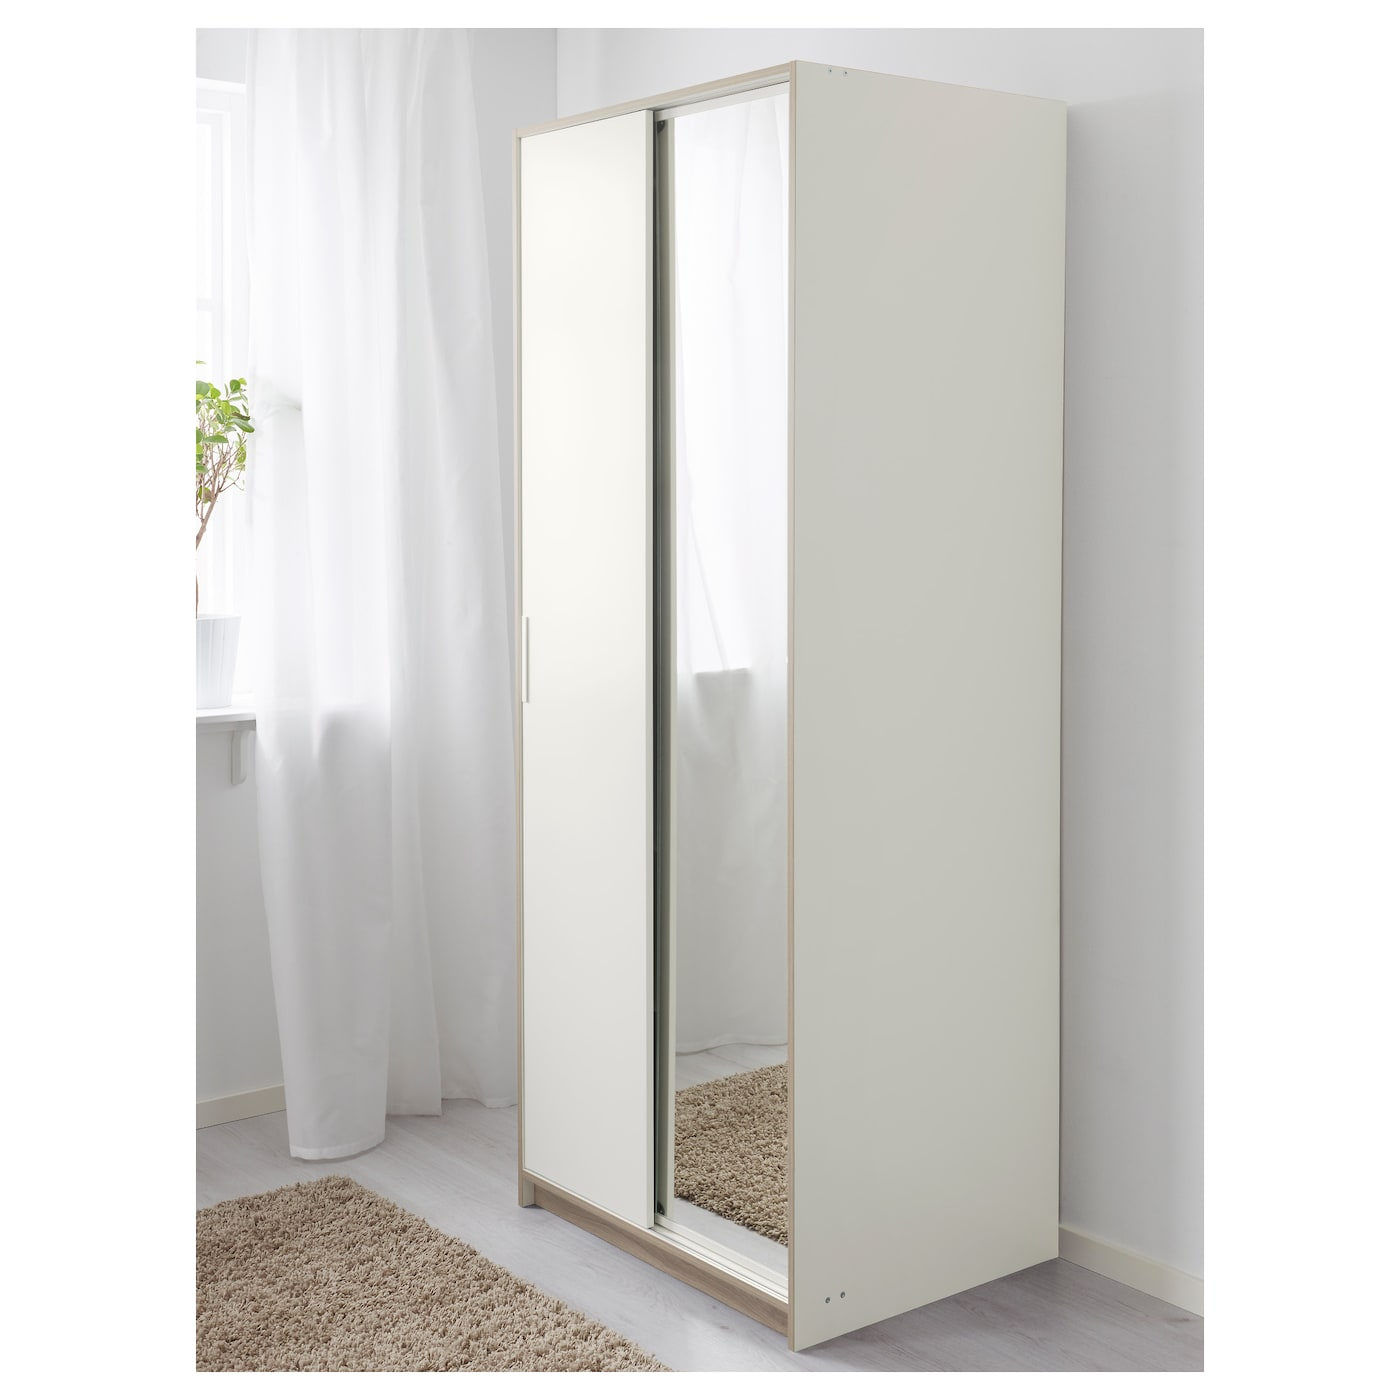 Trysil wardrobe white mirror glass 79x61x202 cm ikea for Mirrors ikea usa